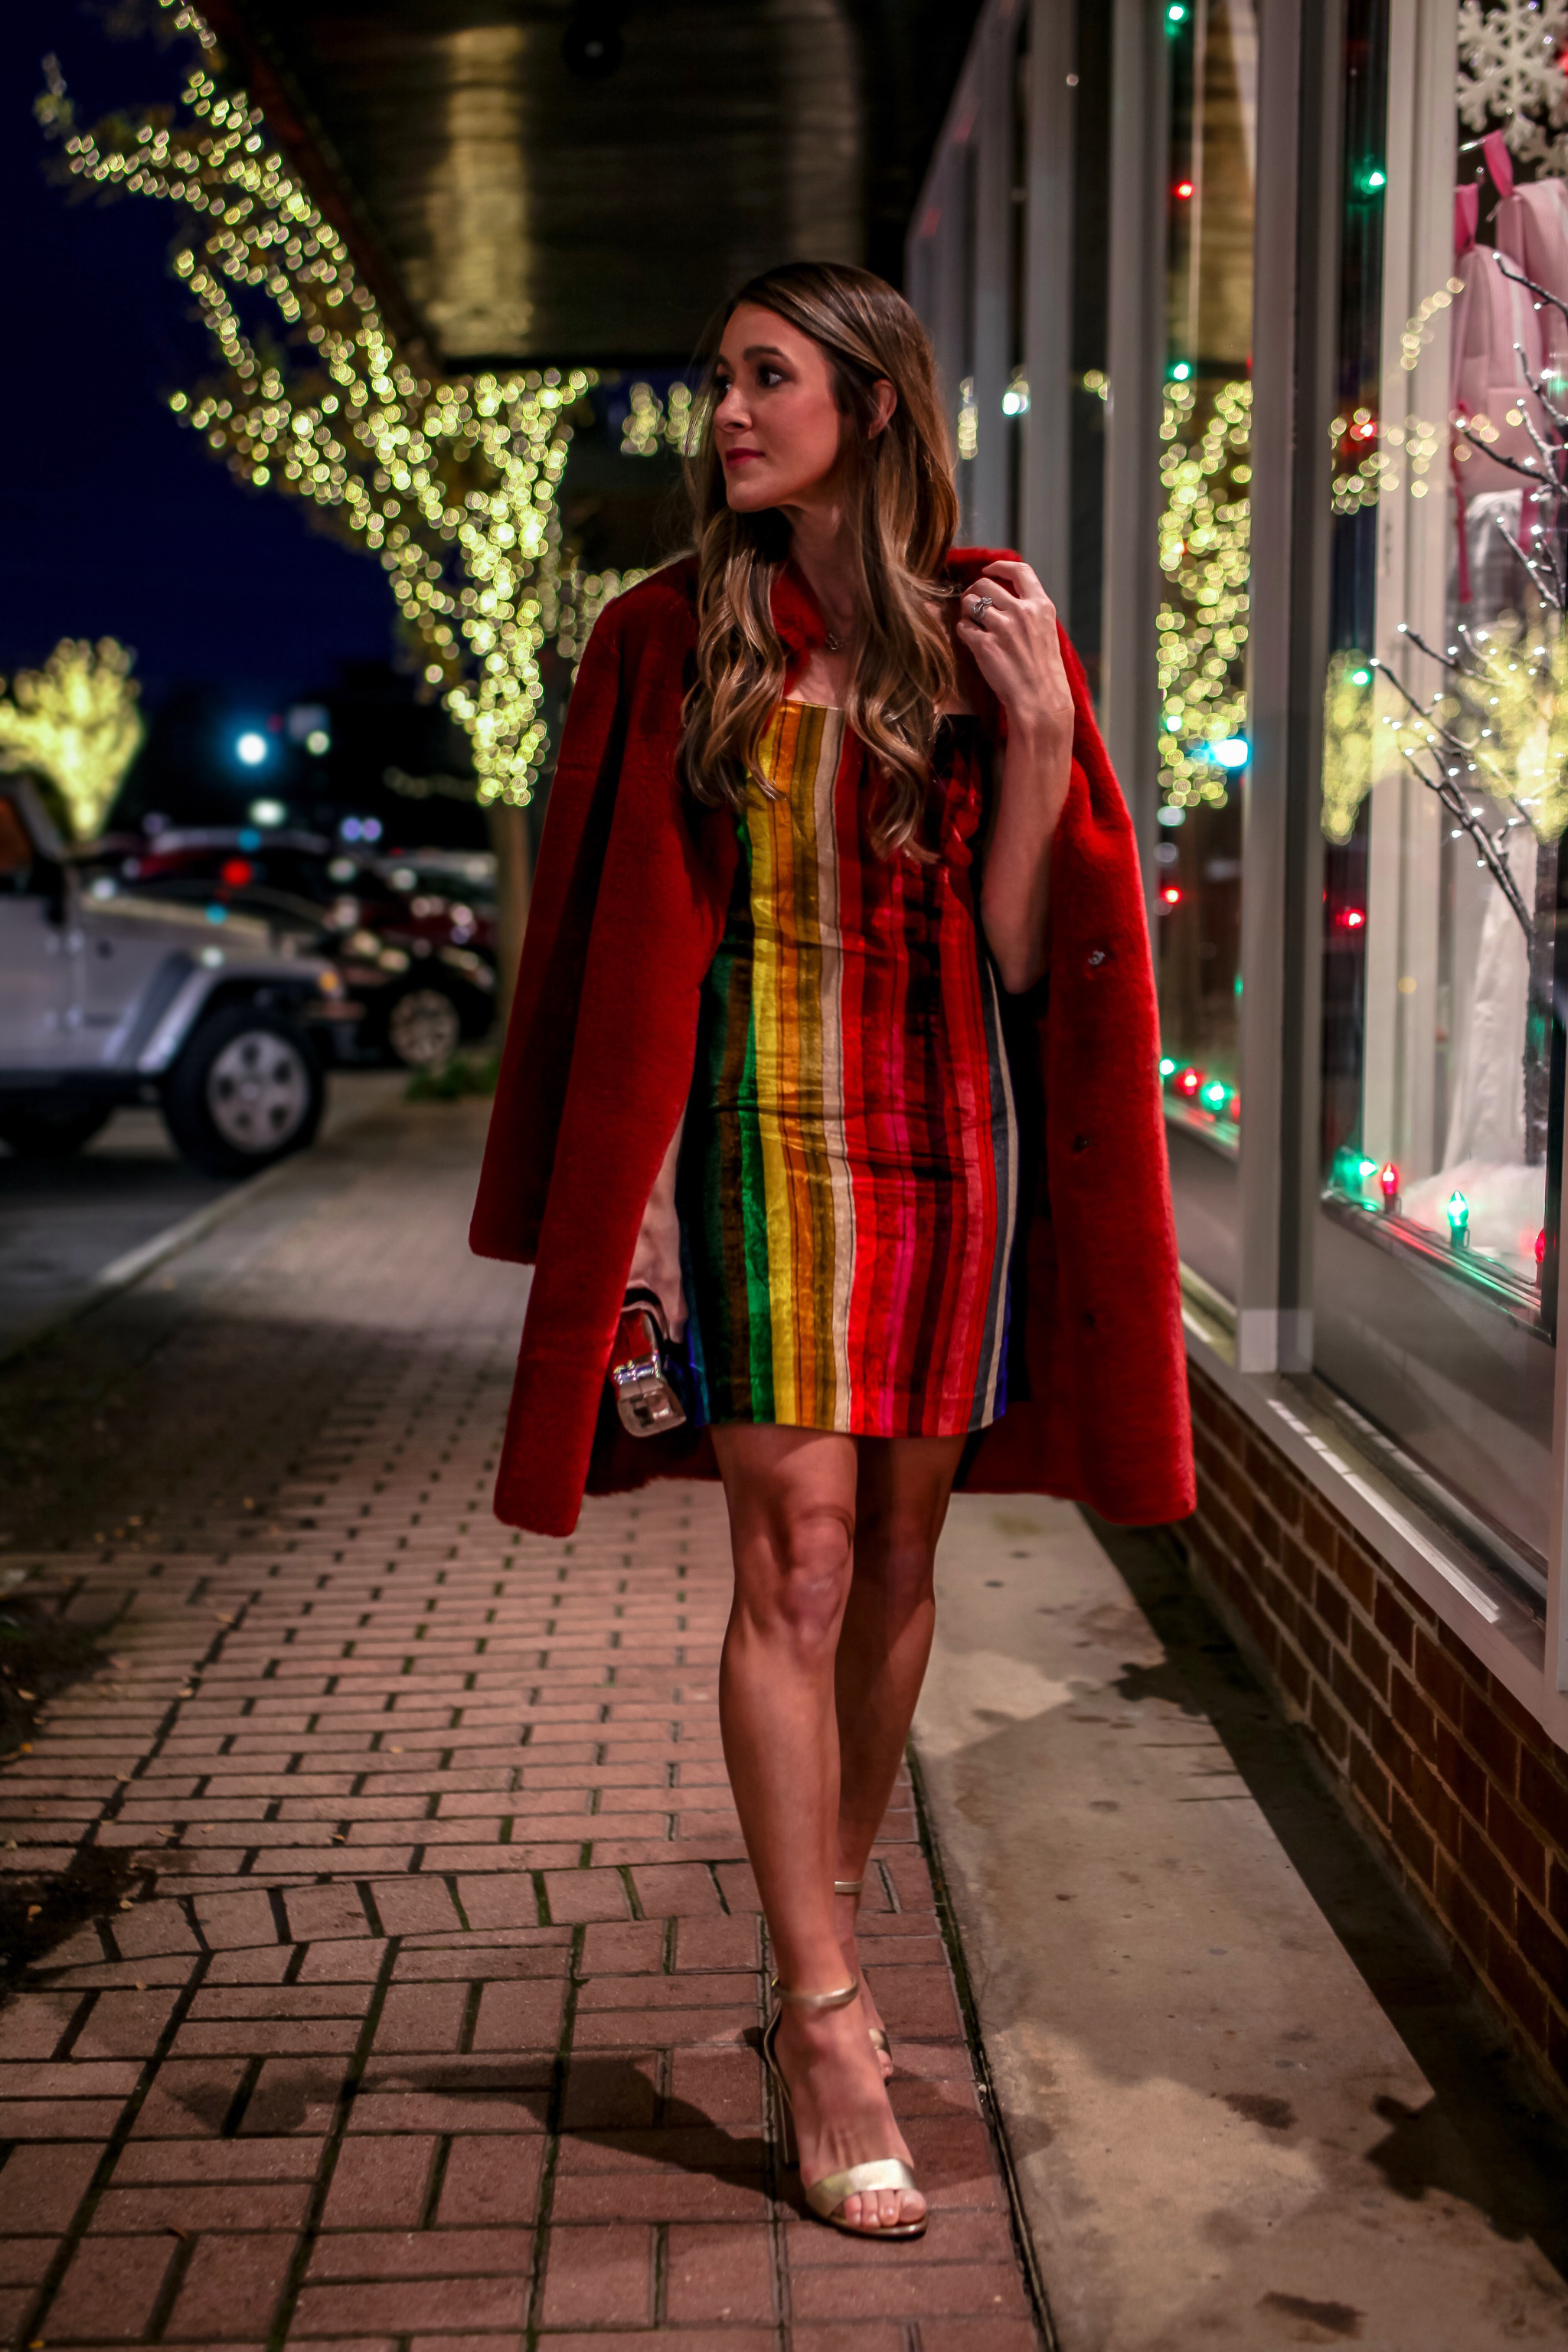 RAINBOW VELVET DRESS - MILLY - HERE AND HERE | RED FAUX FUR COAT - VELVET - HERE | SHOES - SAM EDELMAN HERE | LIP CLUTCH - HERE |